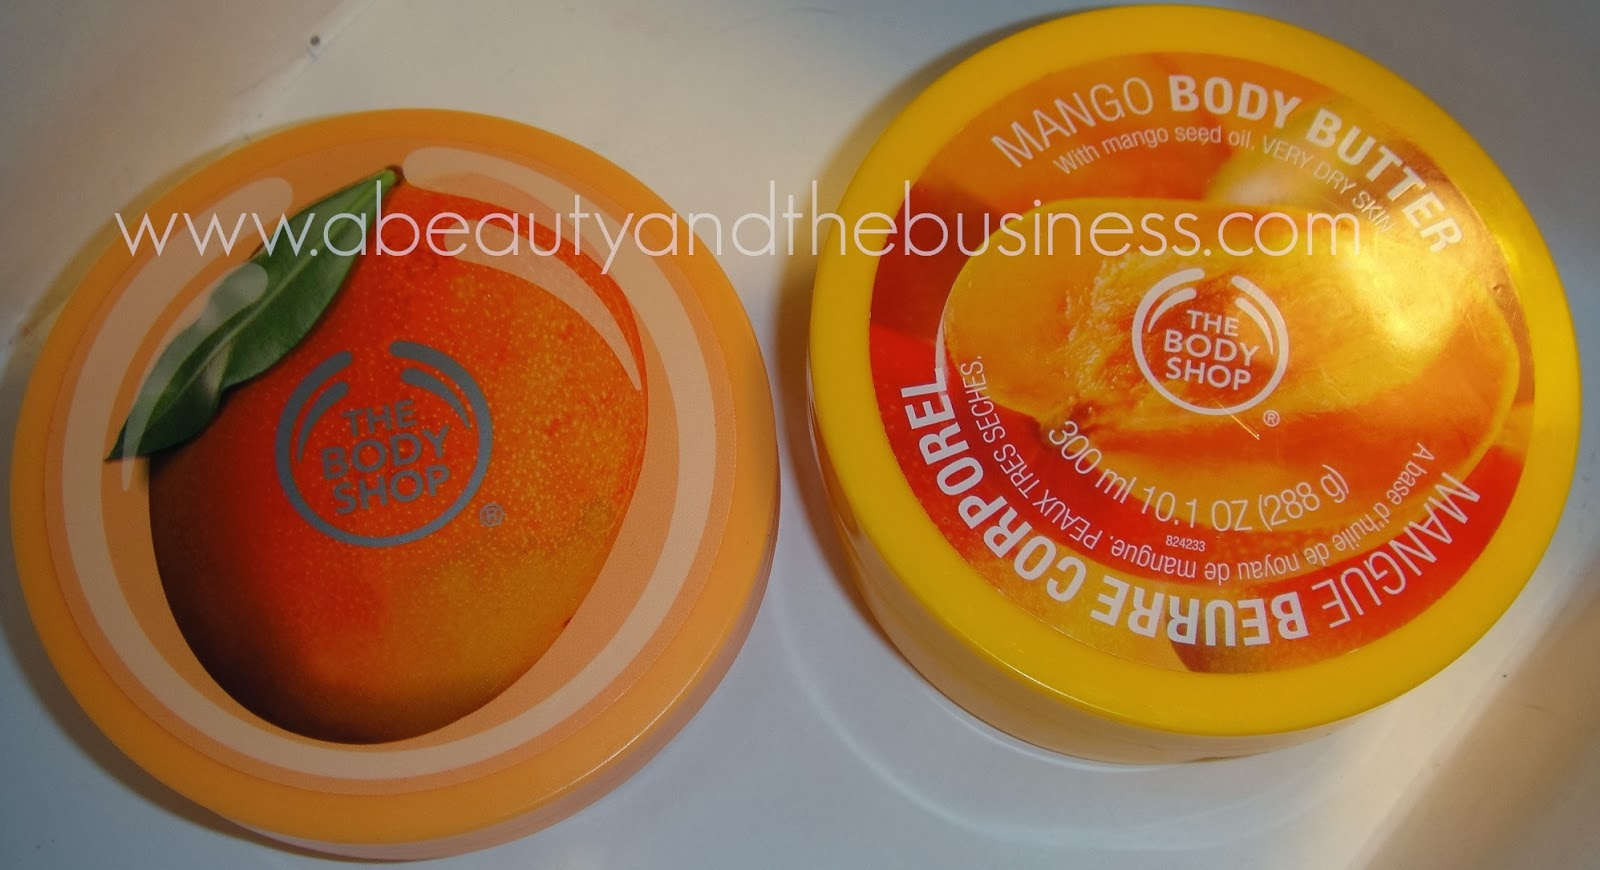 The Body Shop Mango Body Butter Review, the body shop, mango body butter, the body shop body butter, the body shop mango, fair trade body butter, fair trade beauty, fair trade skin care,